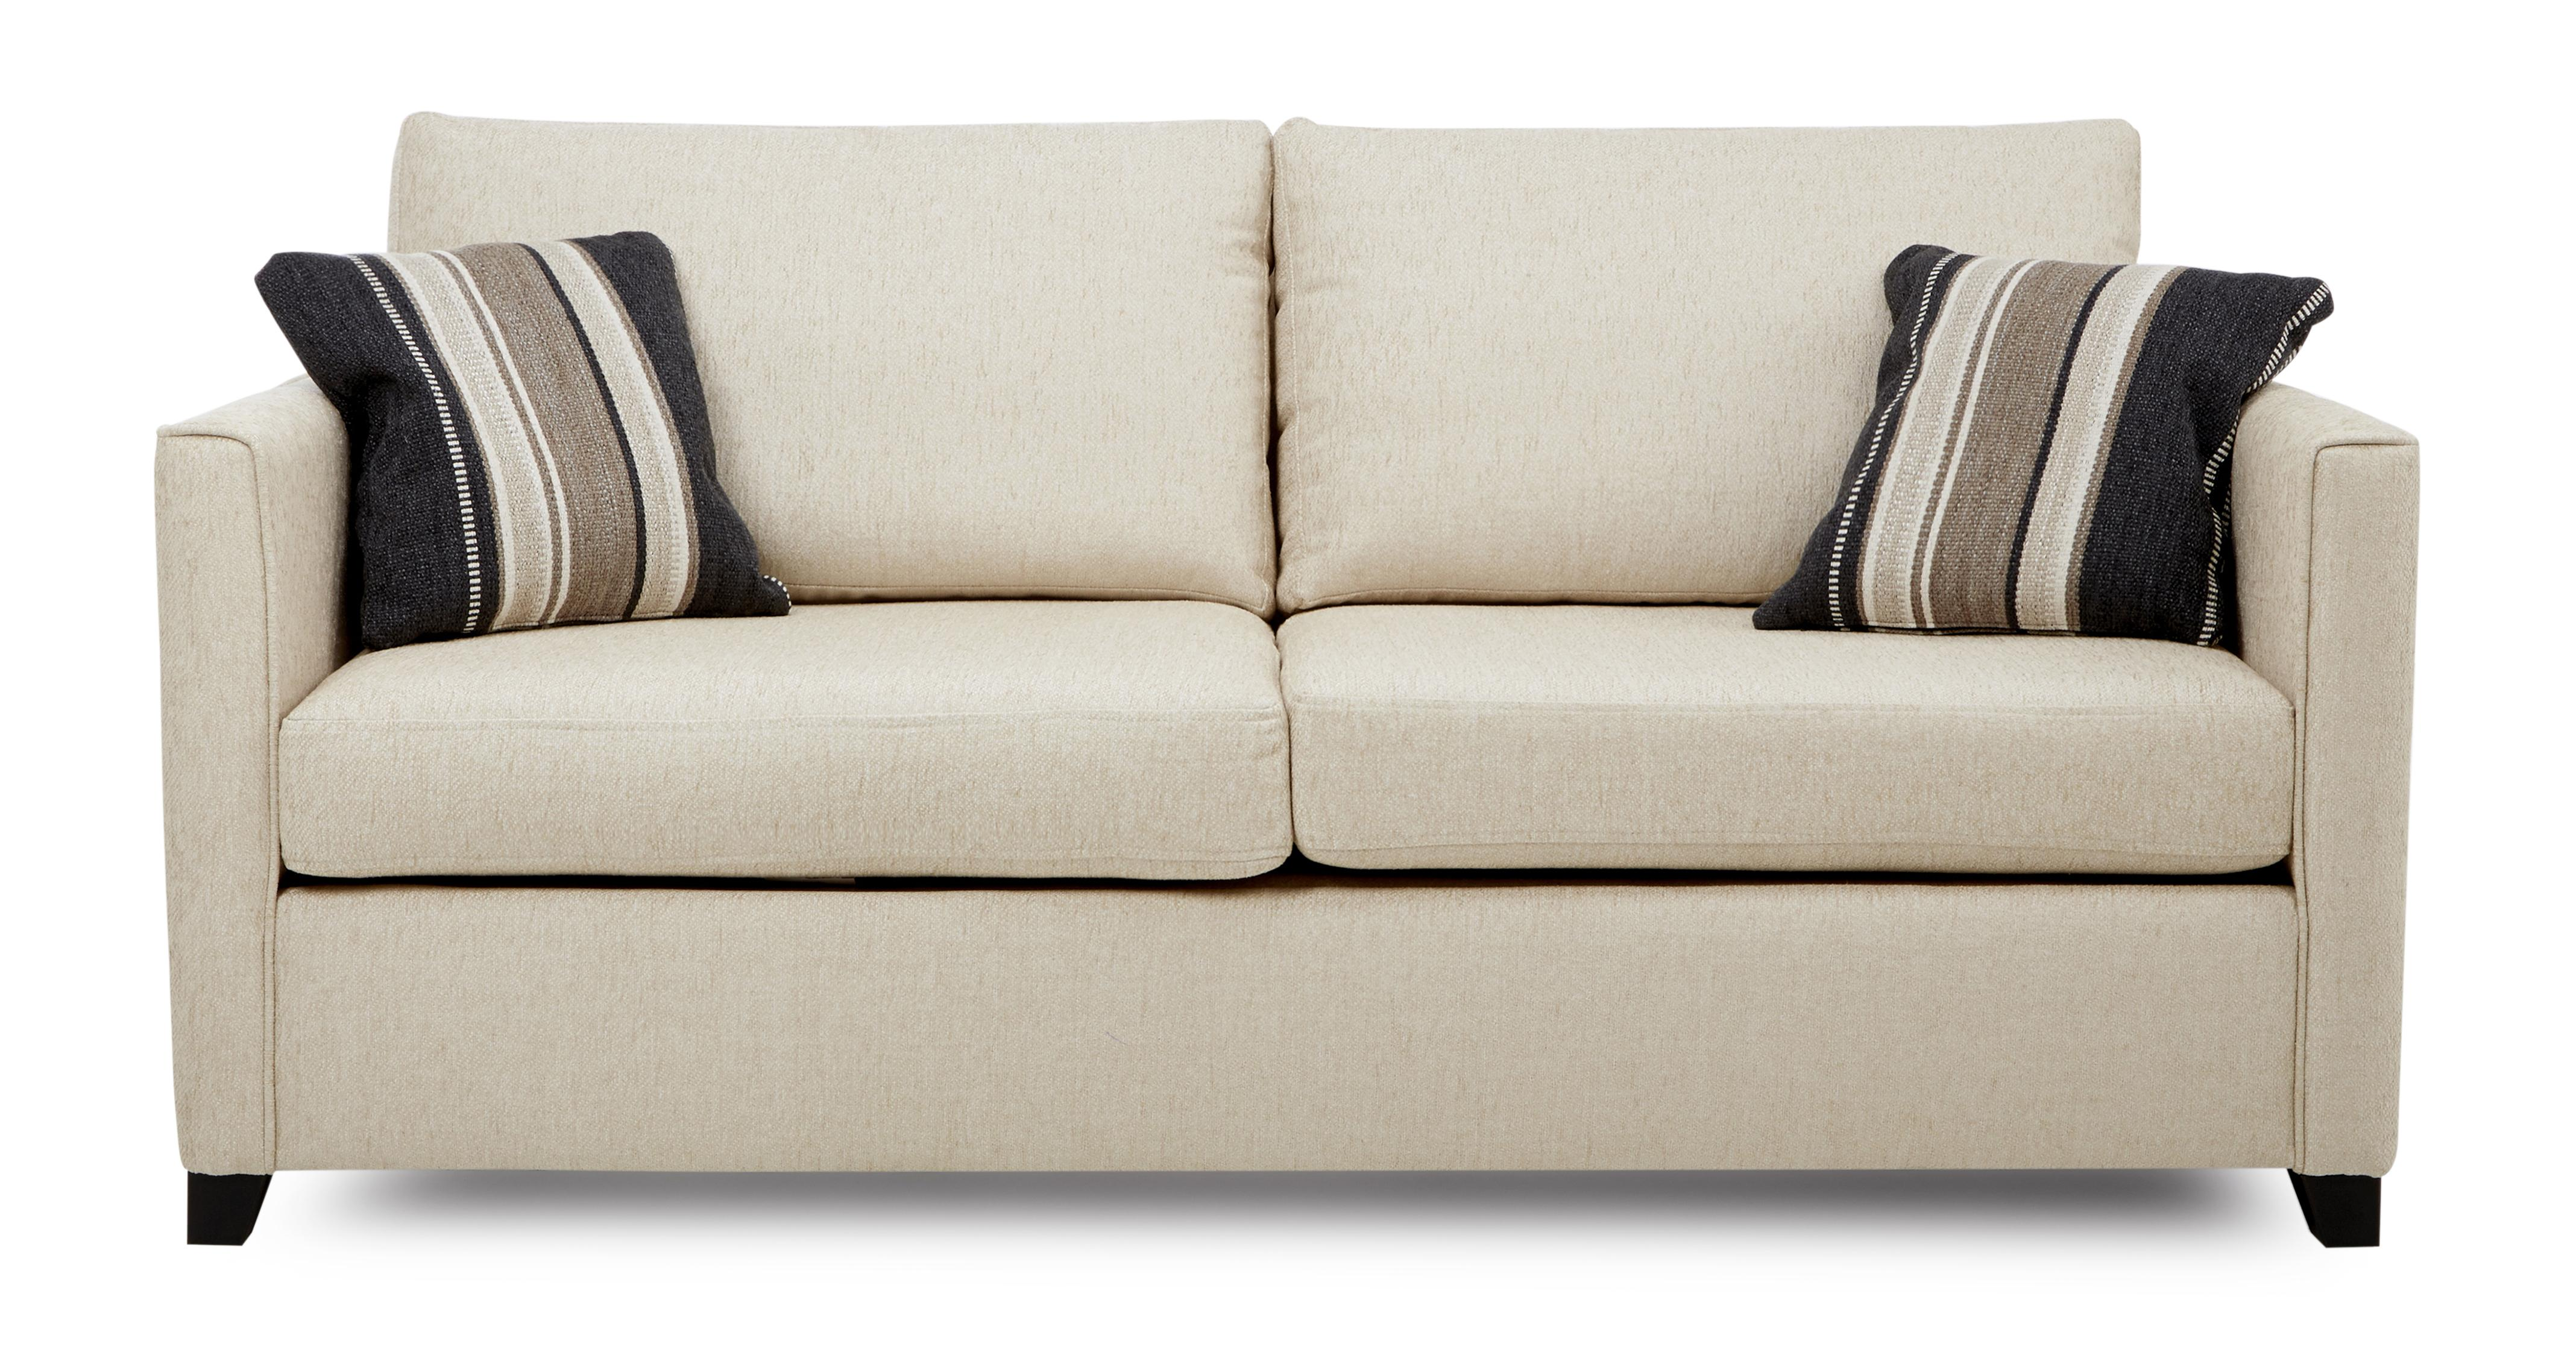 Lucia 3 seater sofa bed dfs ireland for Sofa bed ireland